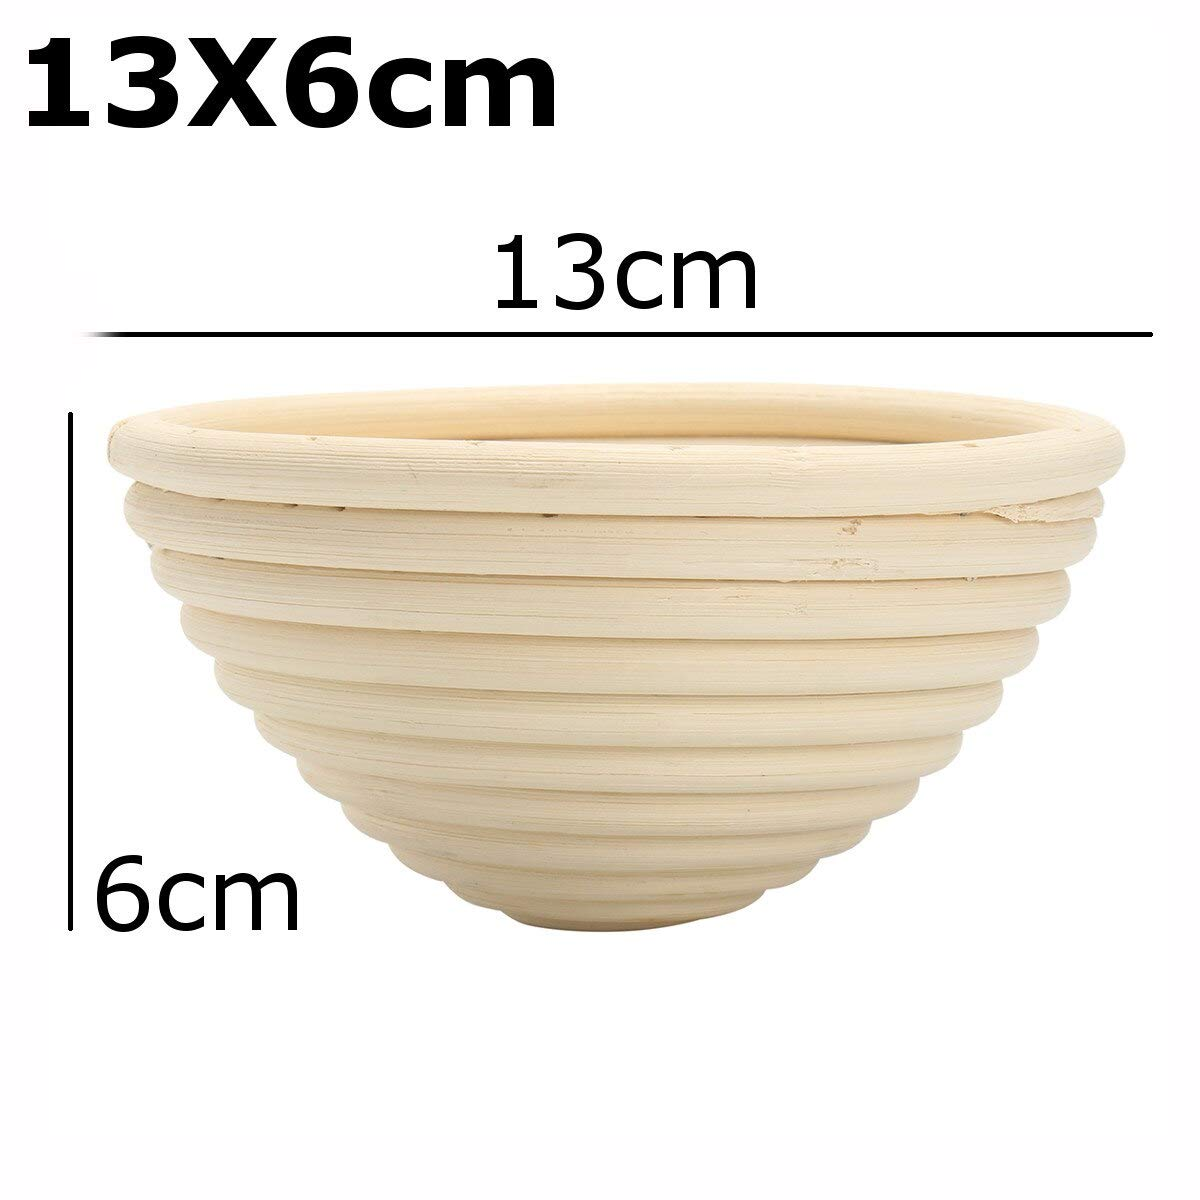 Best Quality - Storage Baskets - Bread Basket Banneton Brotform Rattan Proofing Basket Liner Round Oval Fruit Tray Dough Food Storage Container Organizer Basket - by GTIN - 1 PCs by HIBISCUS. (Image #4)